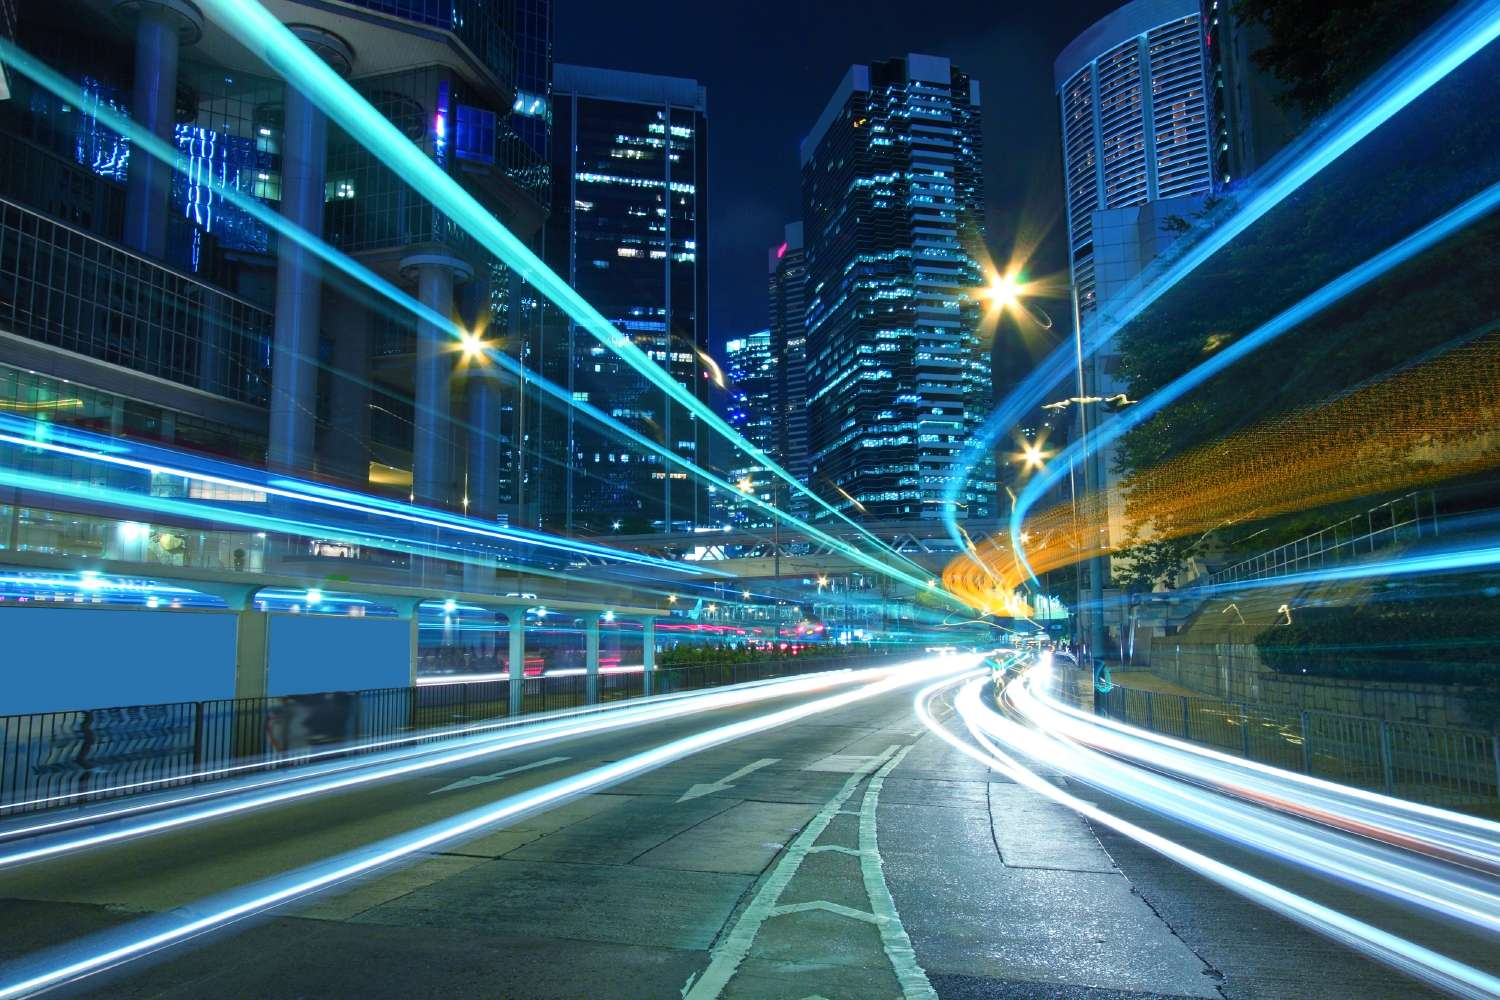 Technology Management Image: How To Monetize Connected Vehicles With Analytics And